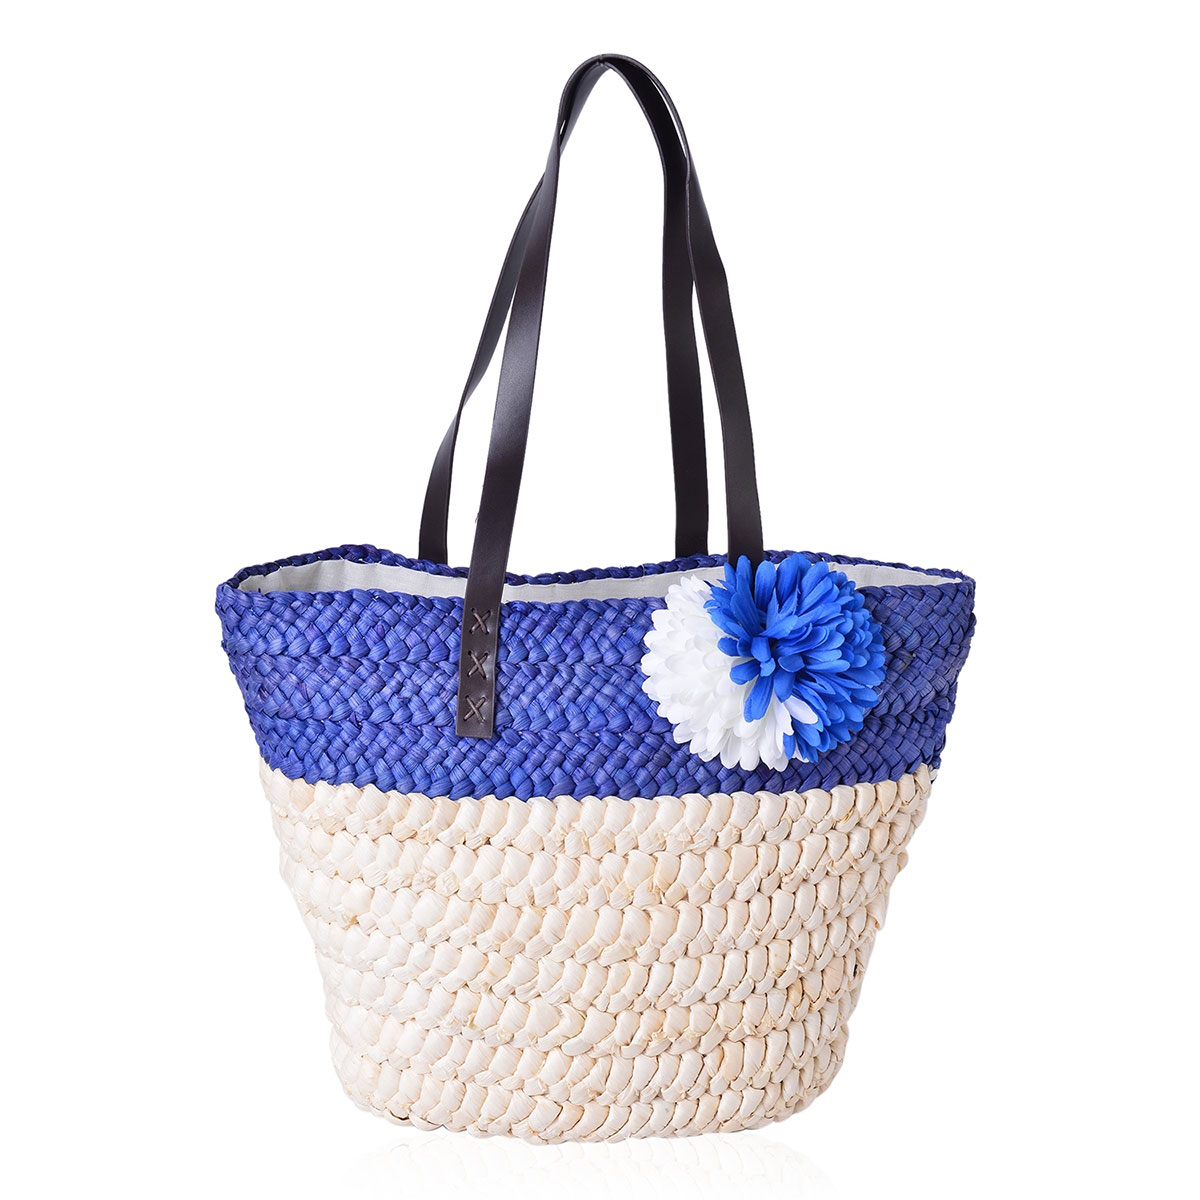 Blue Straw Flower Beach Tote with Faux Leather Strap (11.5x5x12 in)